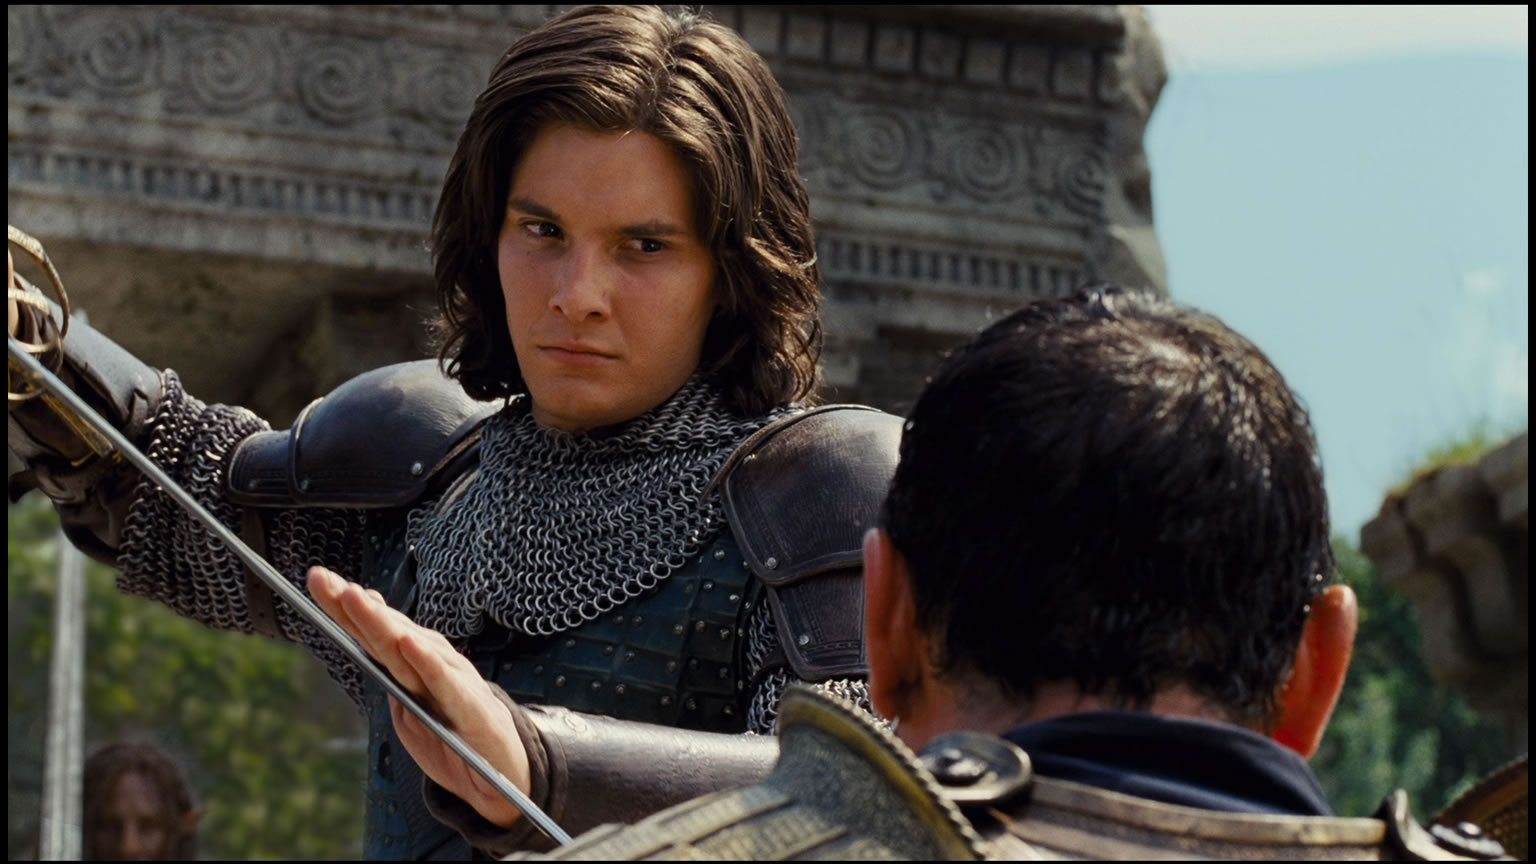 Ben Barnes in The Chronicles of Narnia: Prince Caspian (2008)